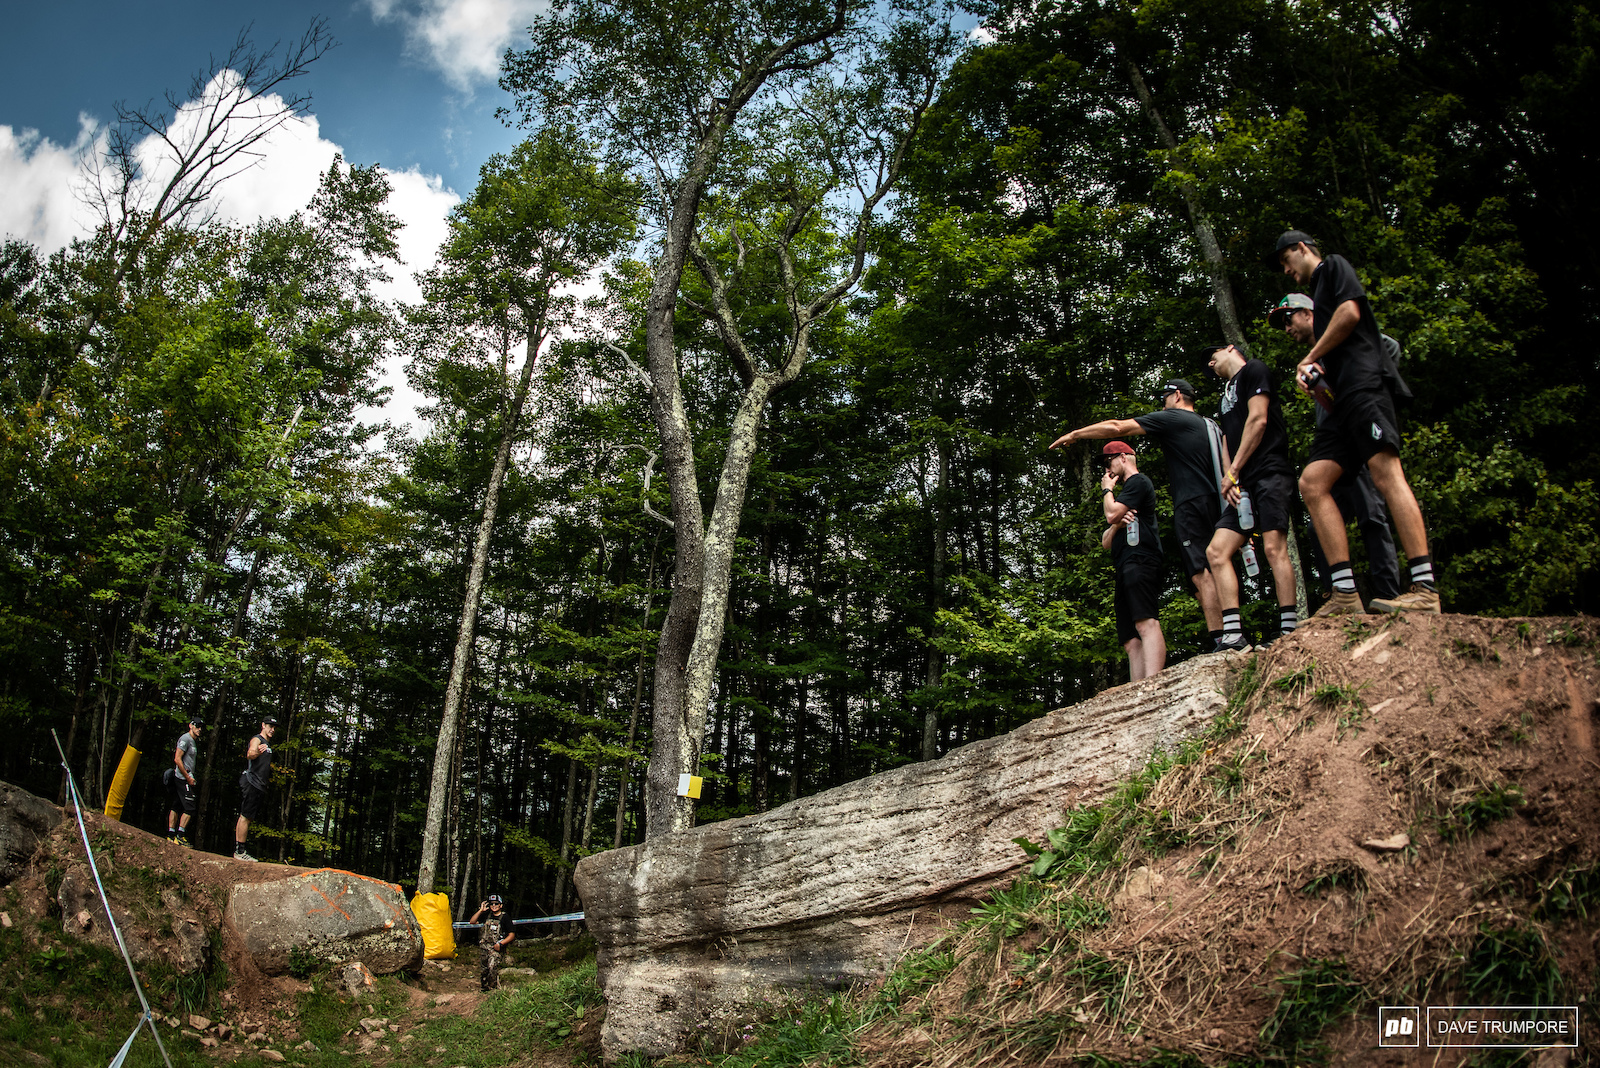 This is a massive jump but in the wise words of Kade Edwards it s fine as long as you clear the rock on the landing